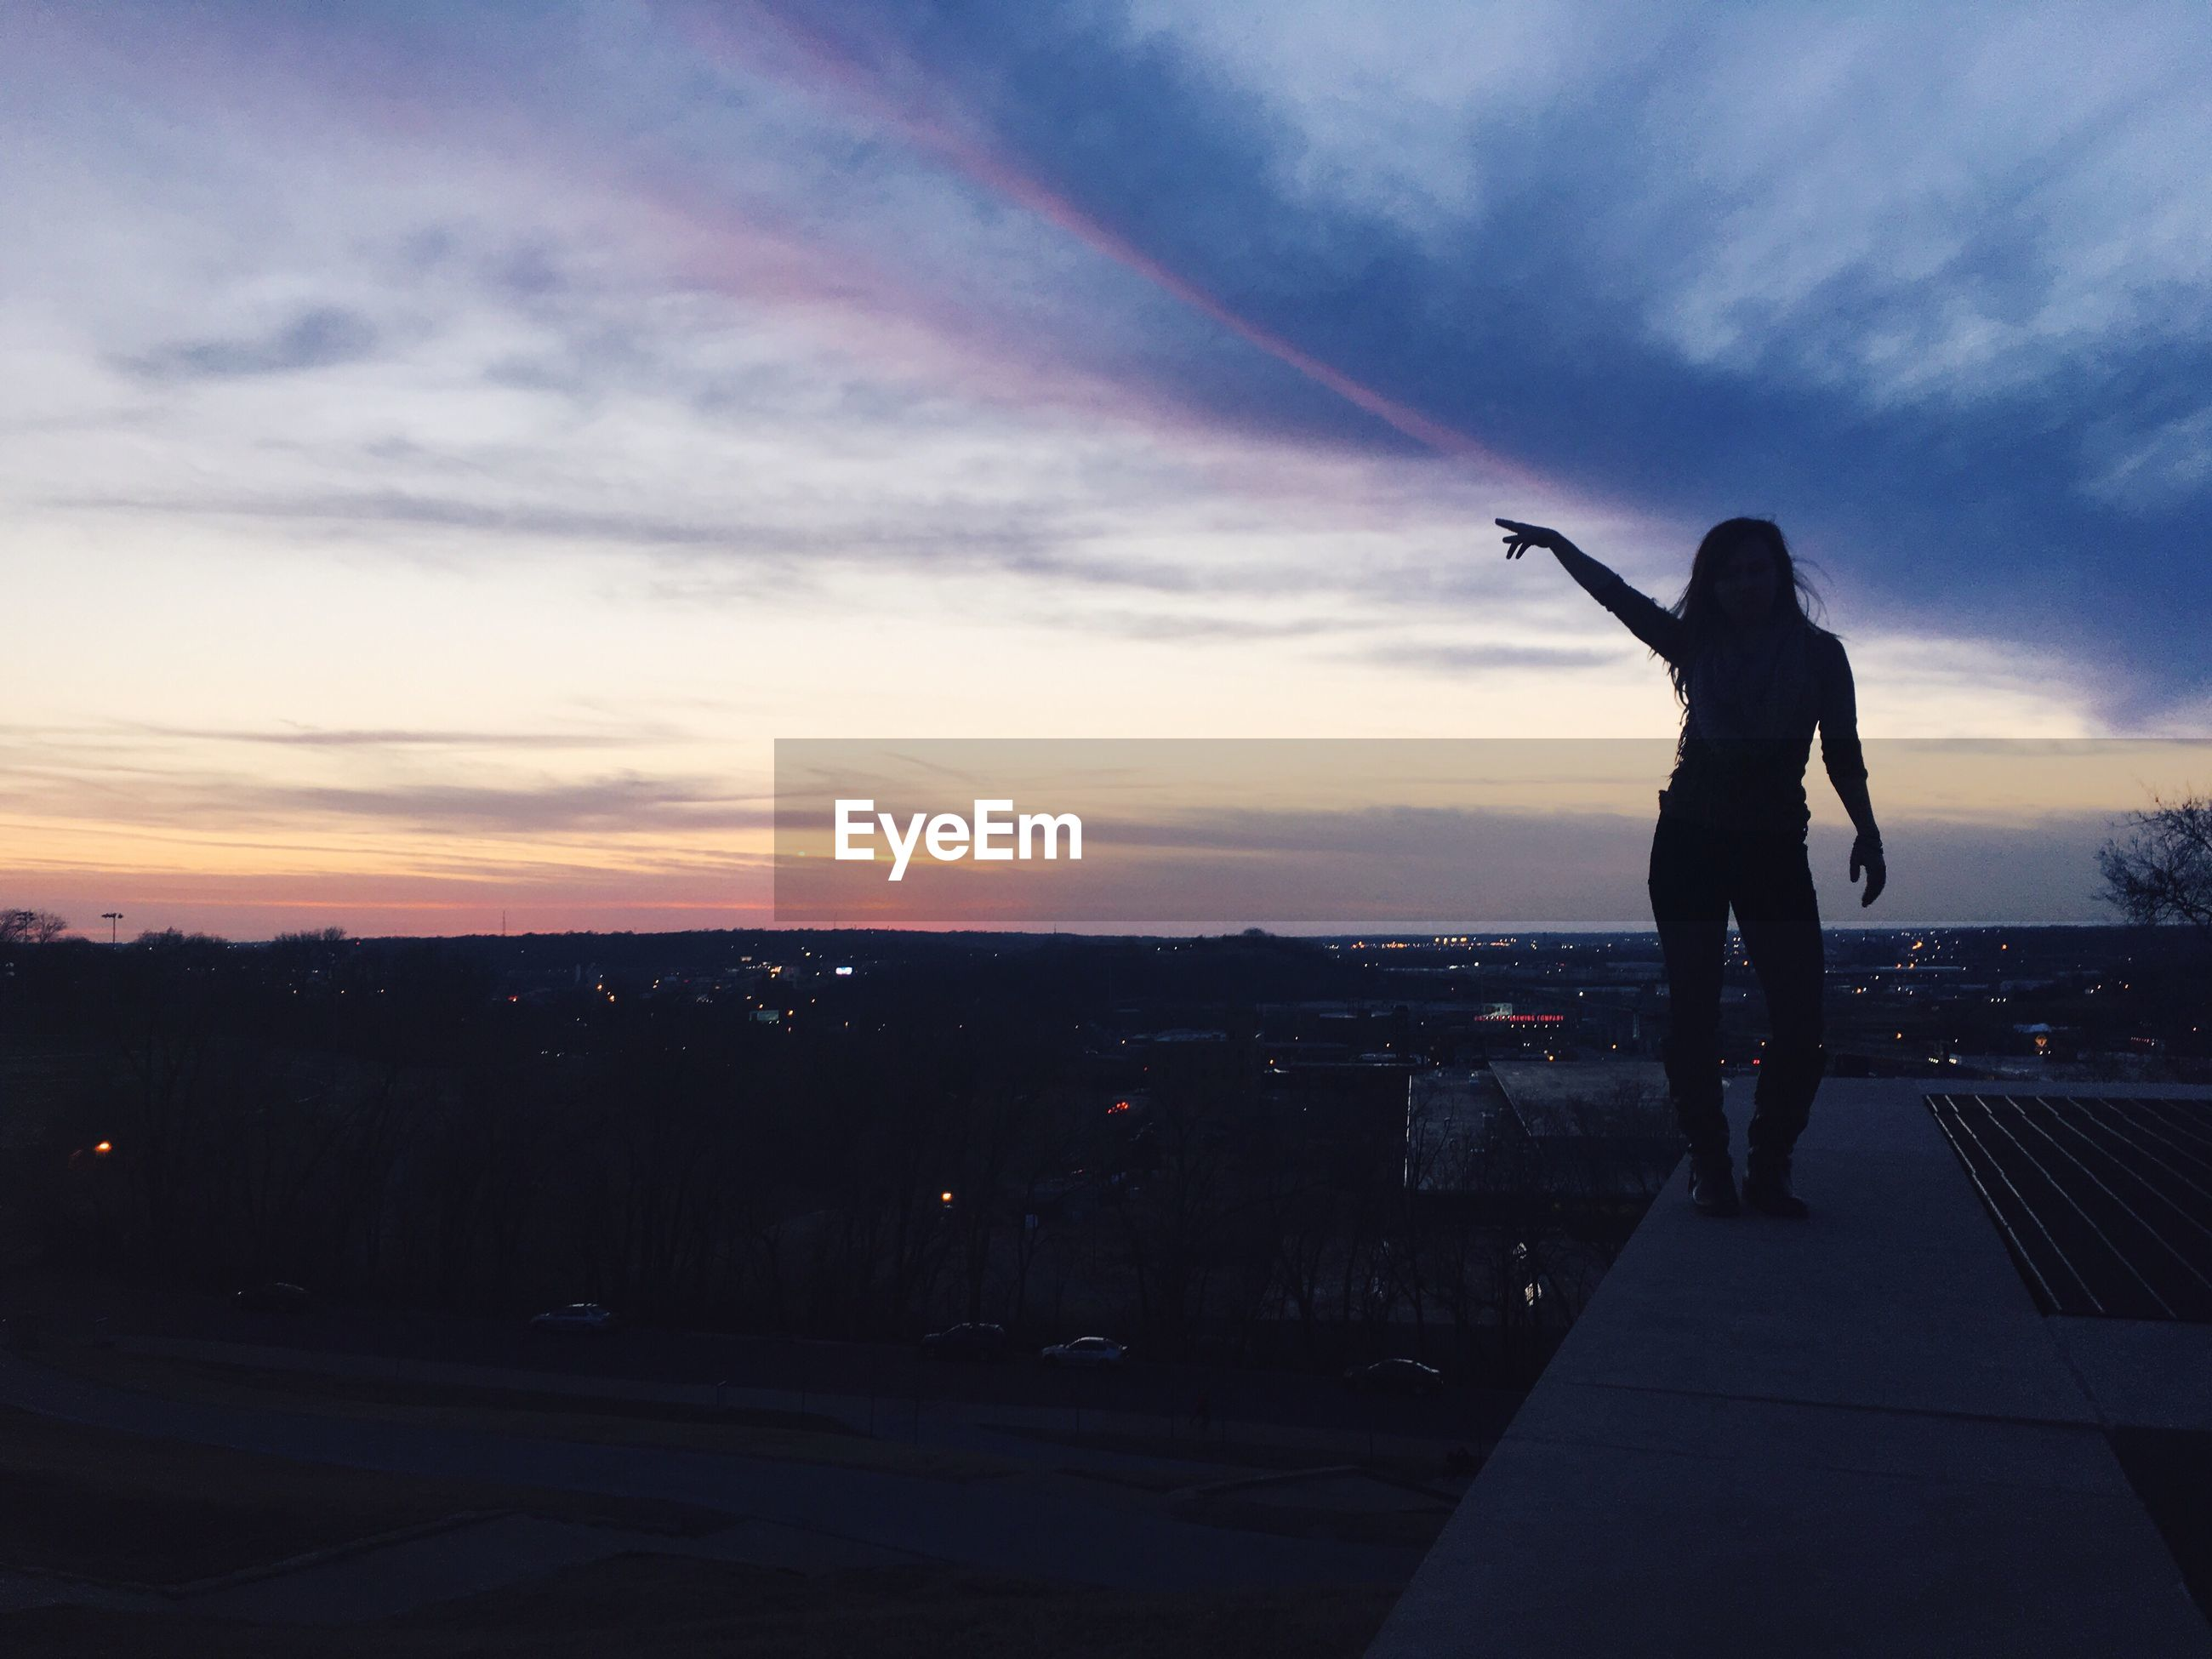 Silhouette woman pointing while standing on retaining wall against sky during sunset